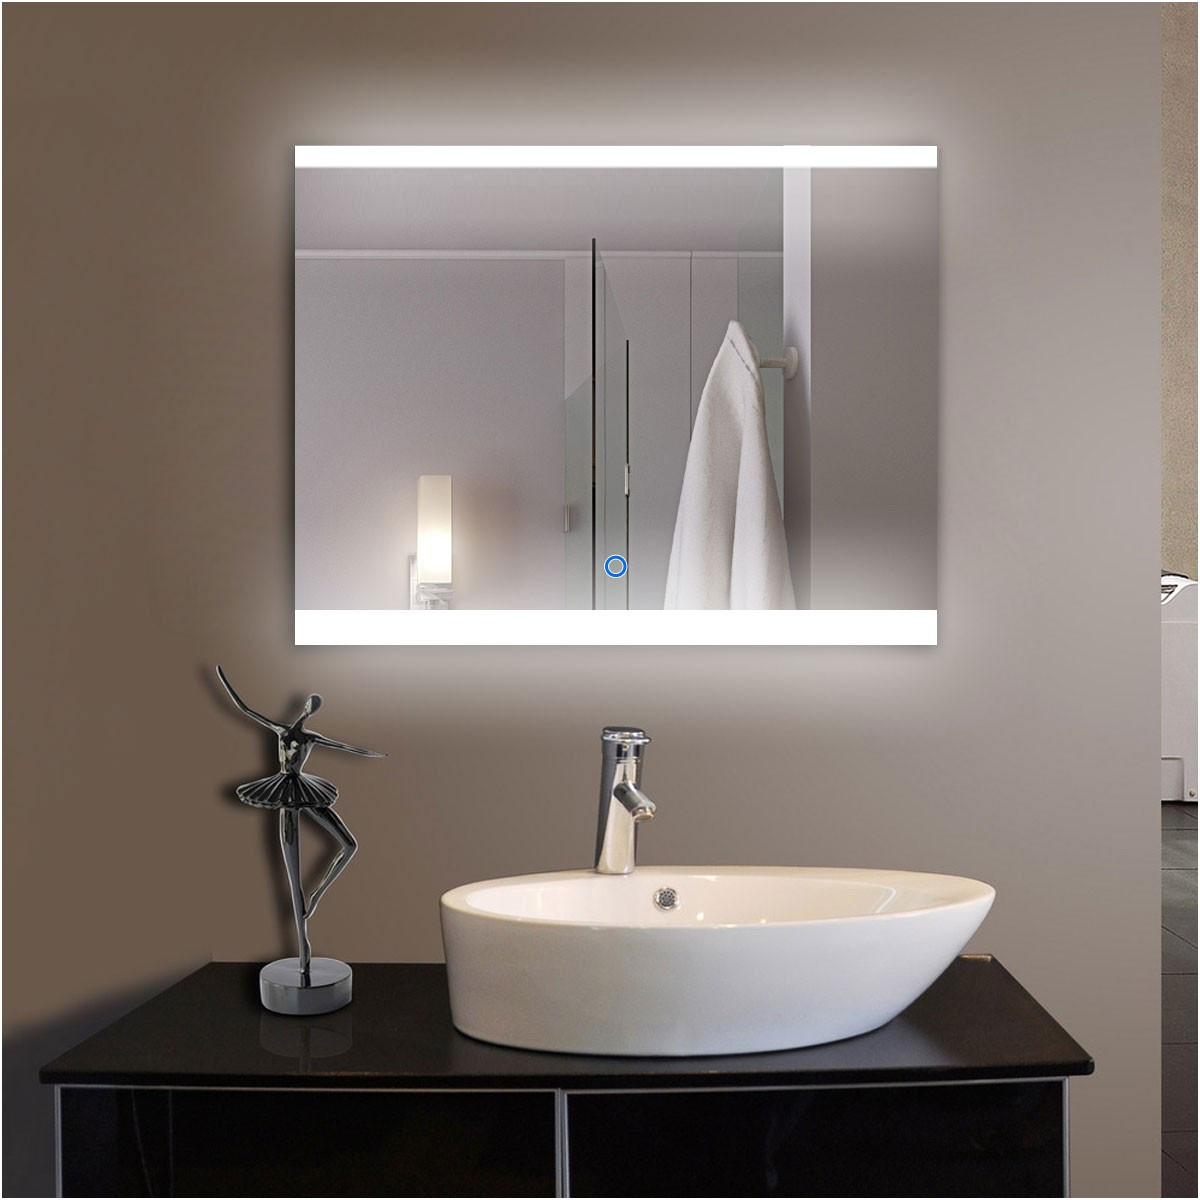 Lovely Made to Measure Bathroom Mirrors